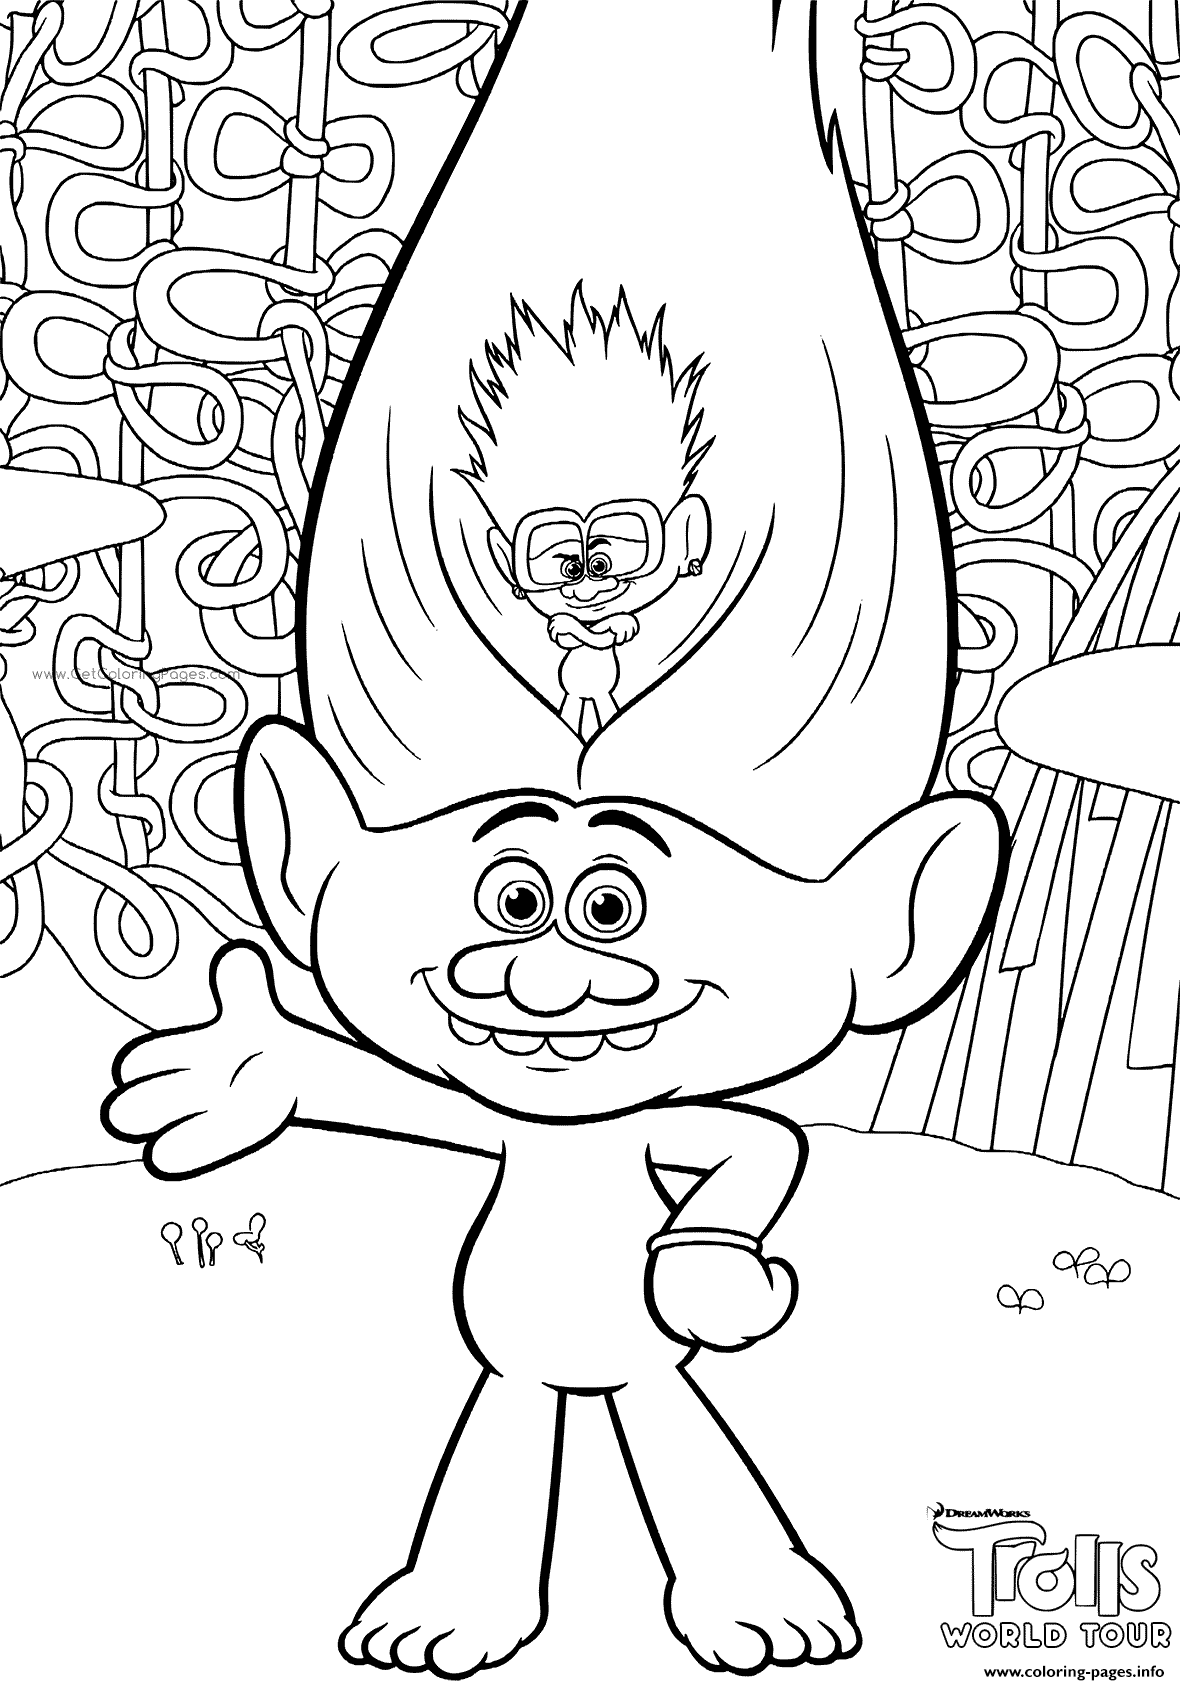 Trolls 2 Coloring Pages Printable